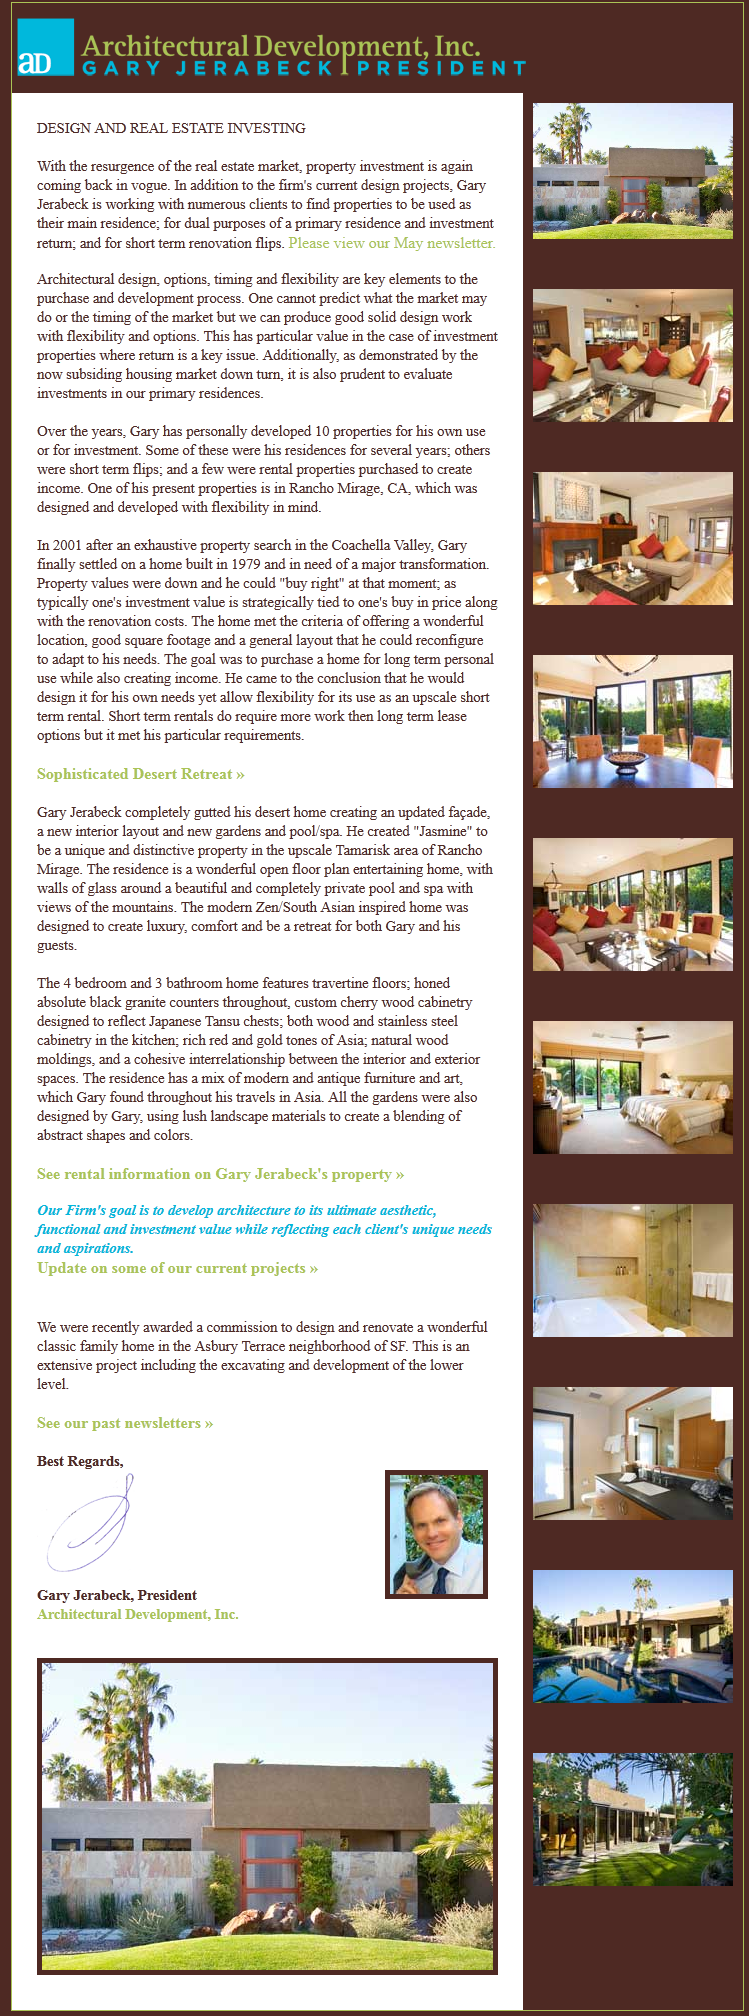 Architectural Development, Inc., Newsletter 7, October 2012